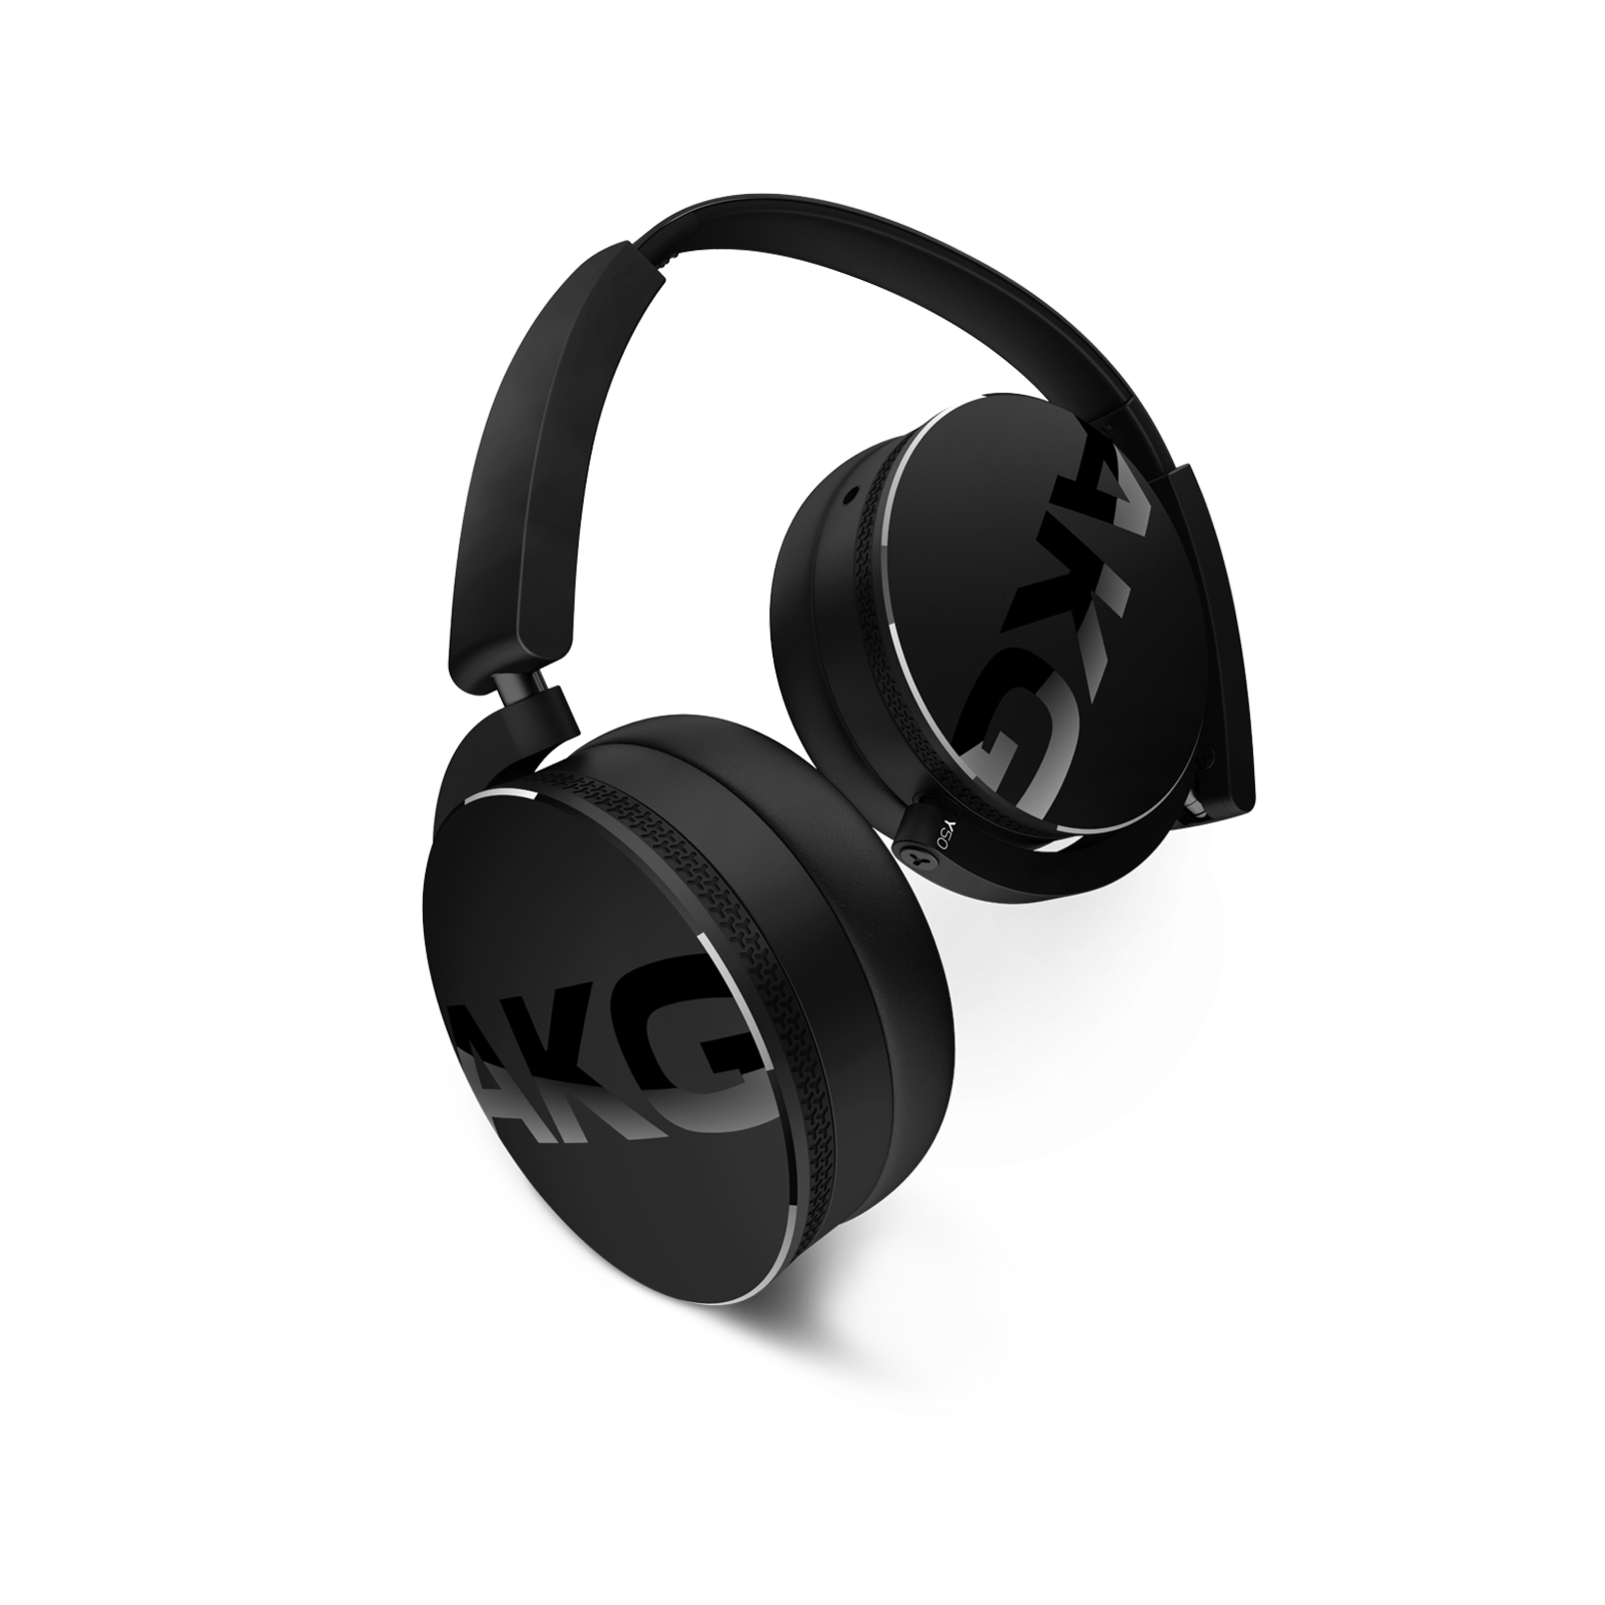 Y50 - Black - On-ear headphones with AKG-quality sound, smart styling, snug fit and detachable cable with in-line remote/mic - Hero